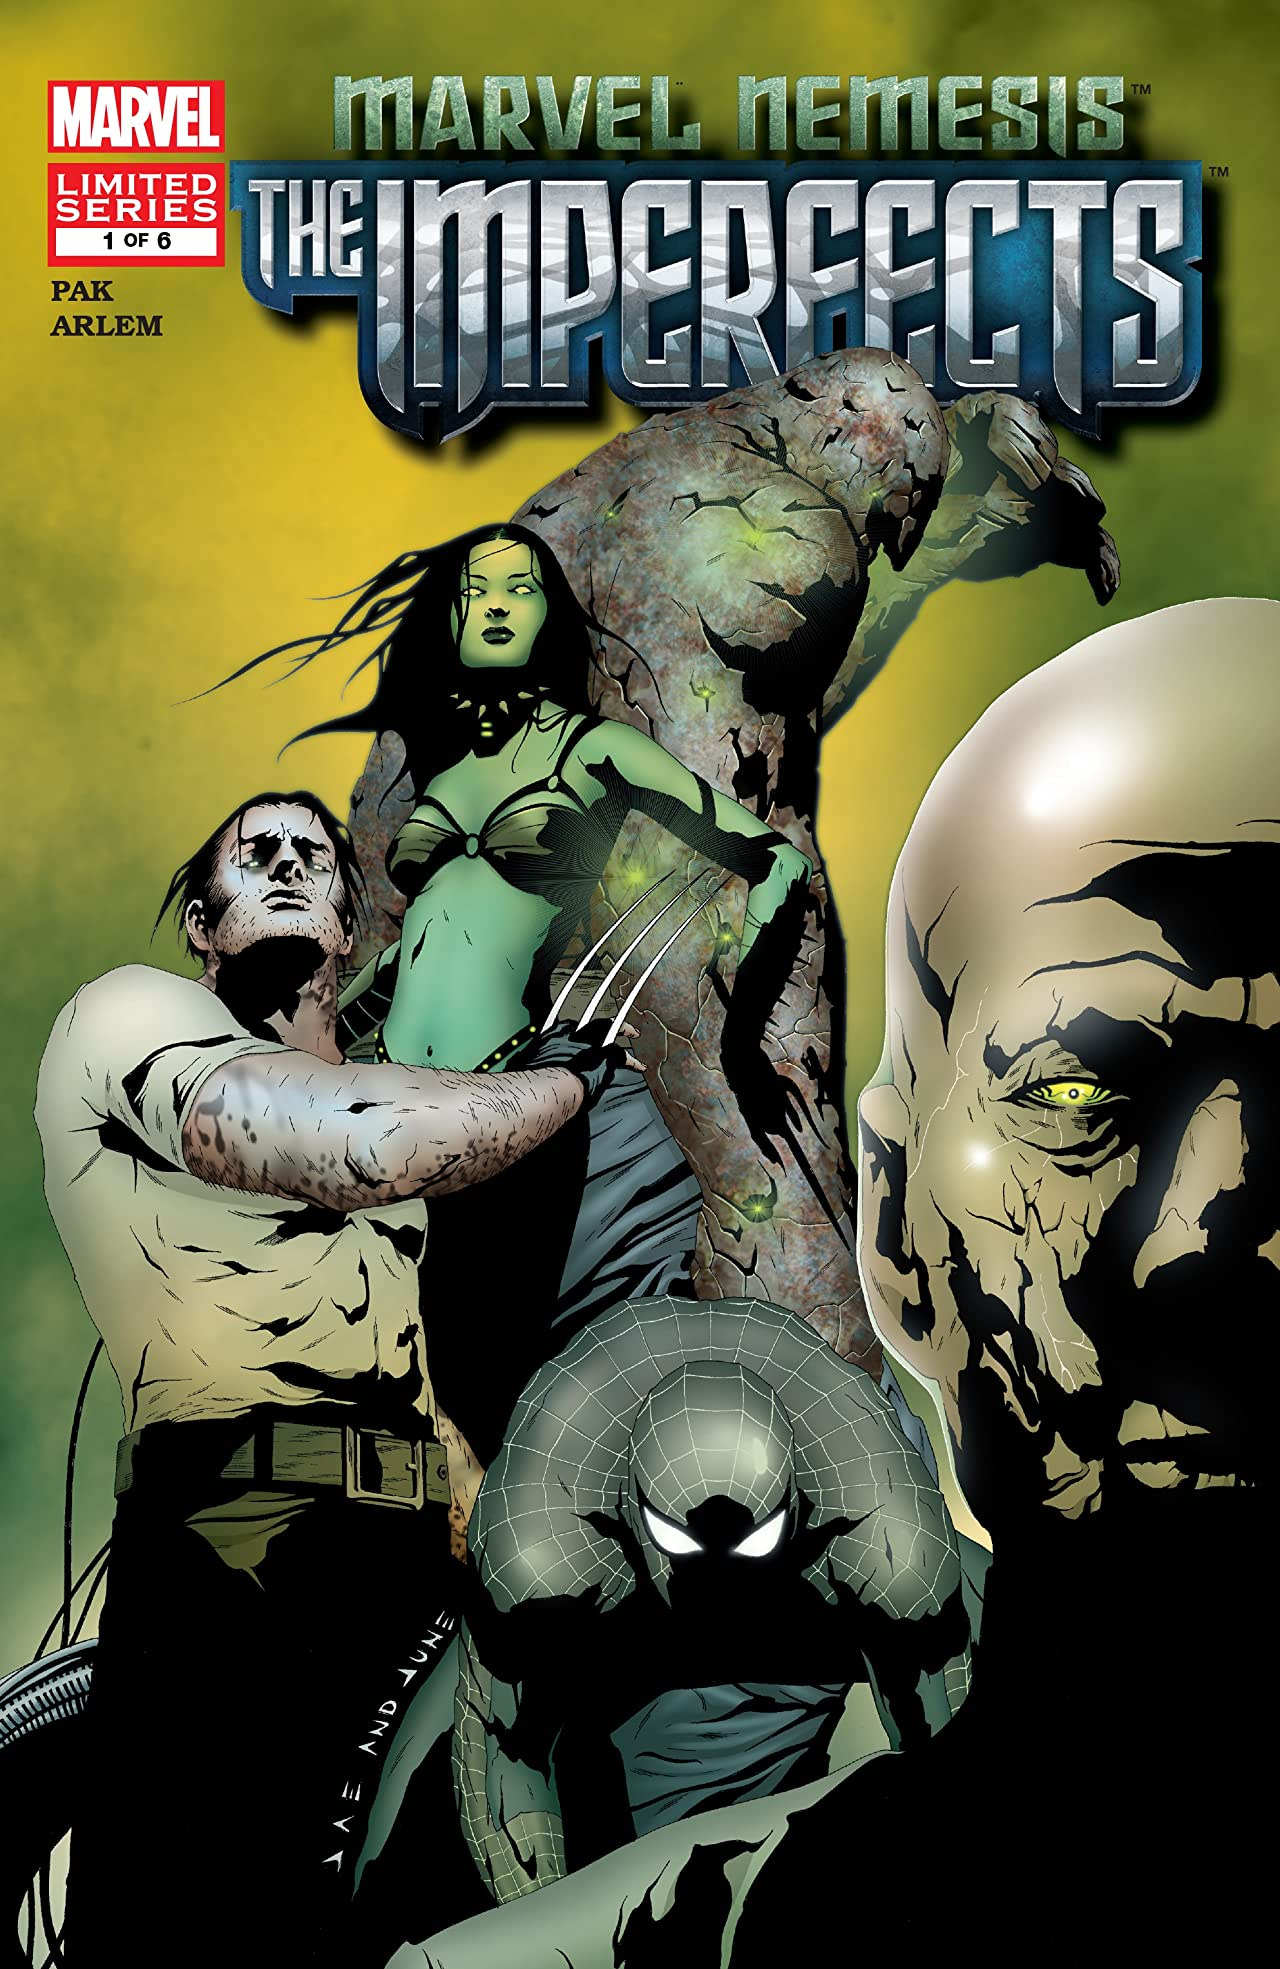 Marvel Nemesis: The Imperfects (2005) #1